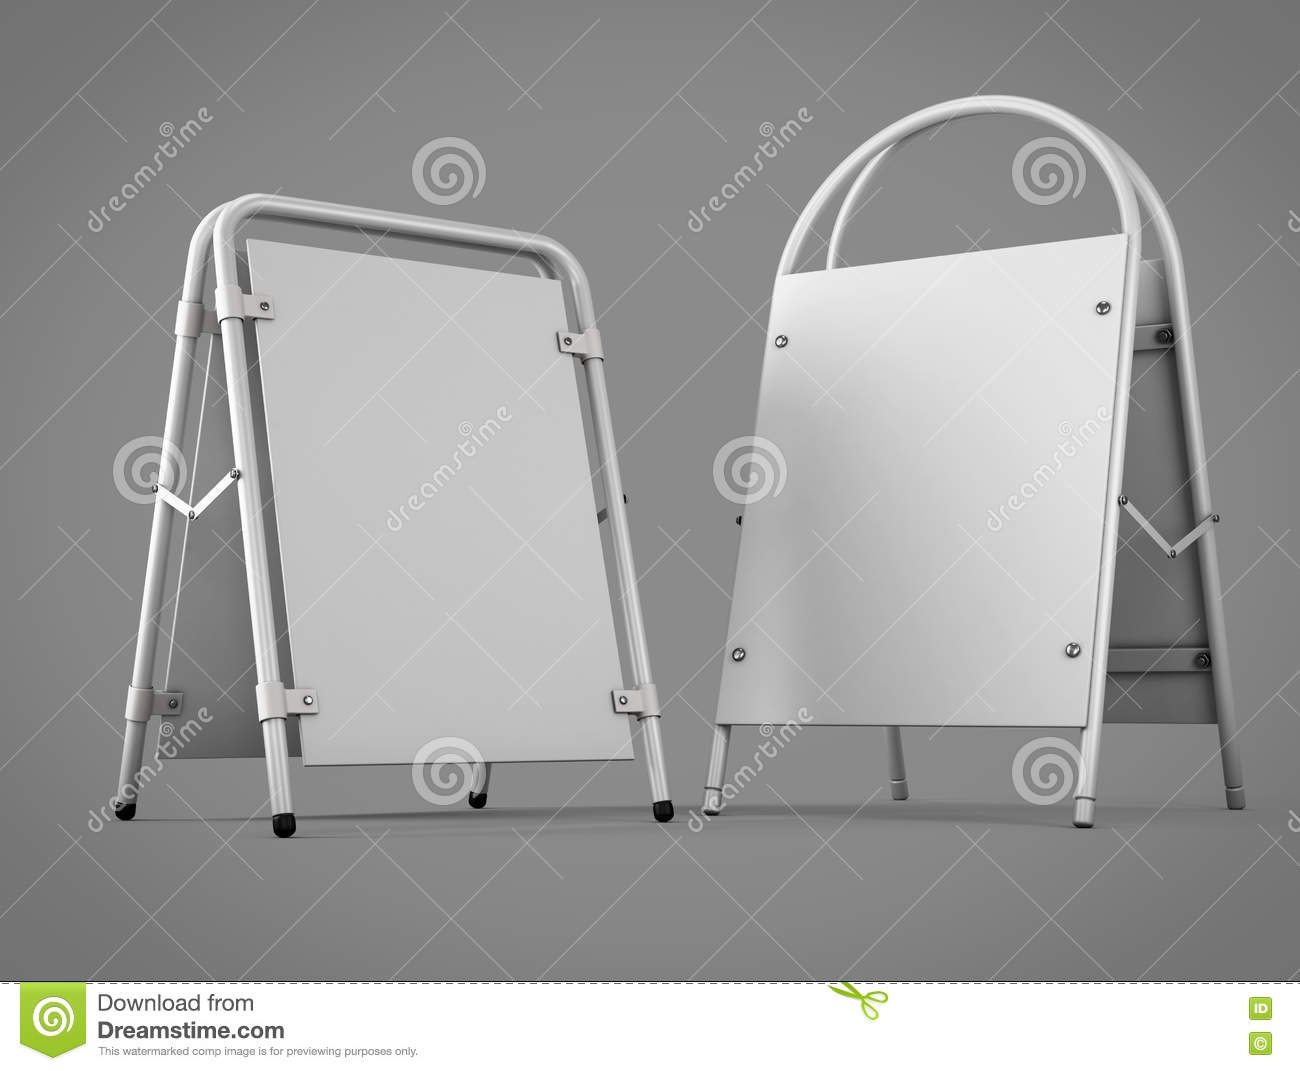 Two Types Of Outdoor Advertising Stands For Your Design